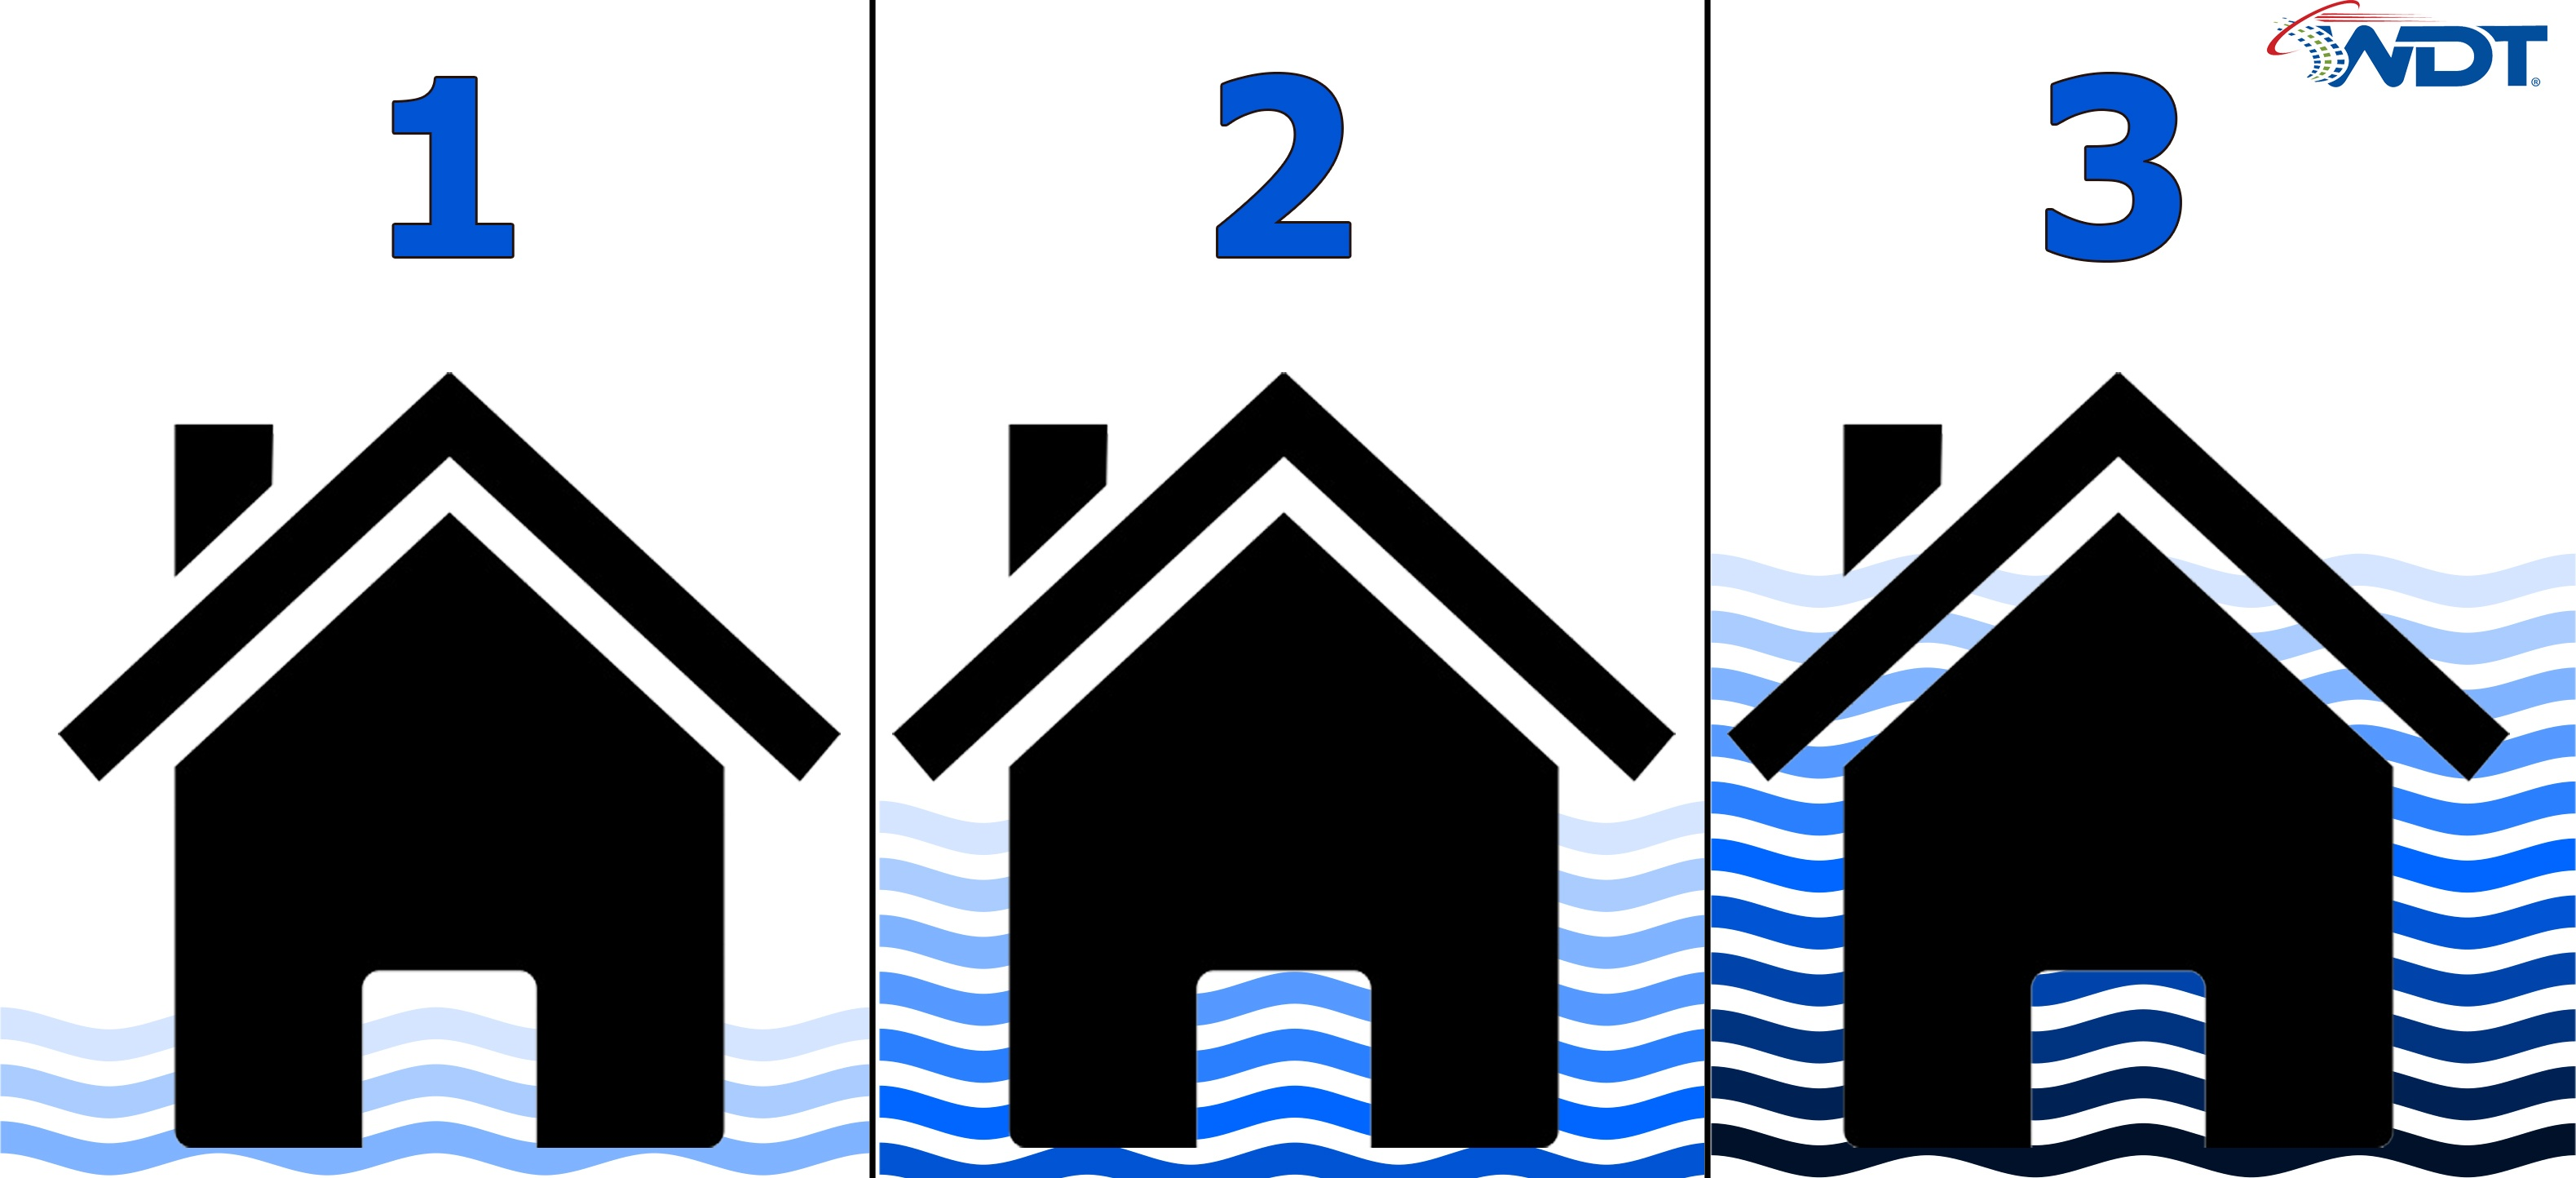 Do We Need a New Hurricane Rating Scale That Accounts for Flooding?